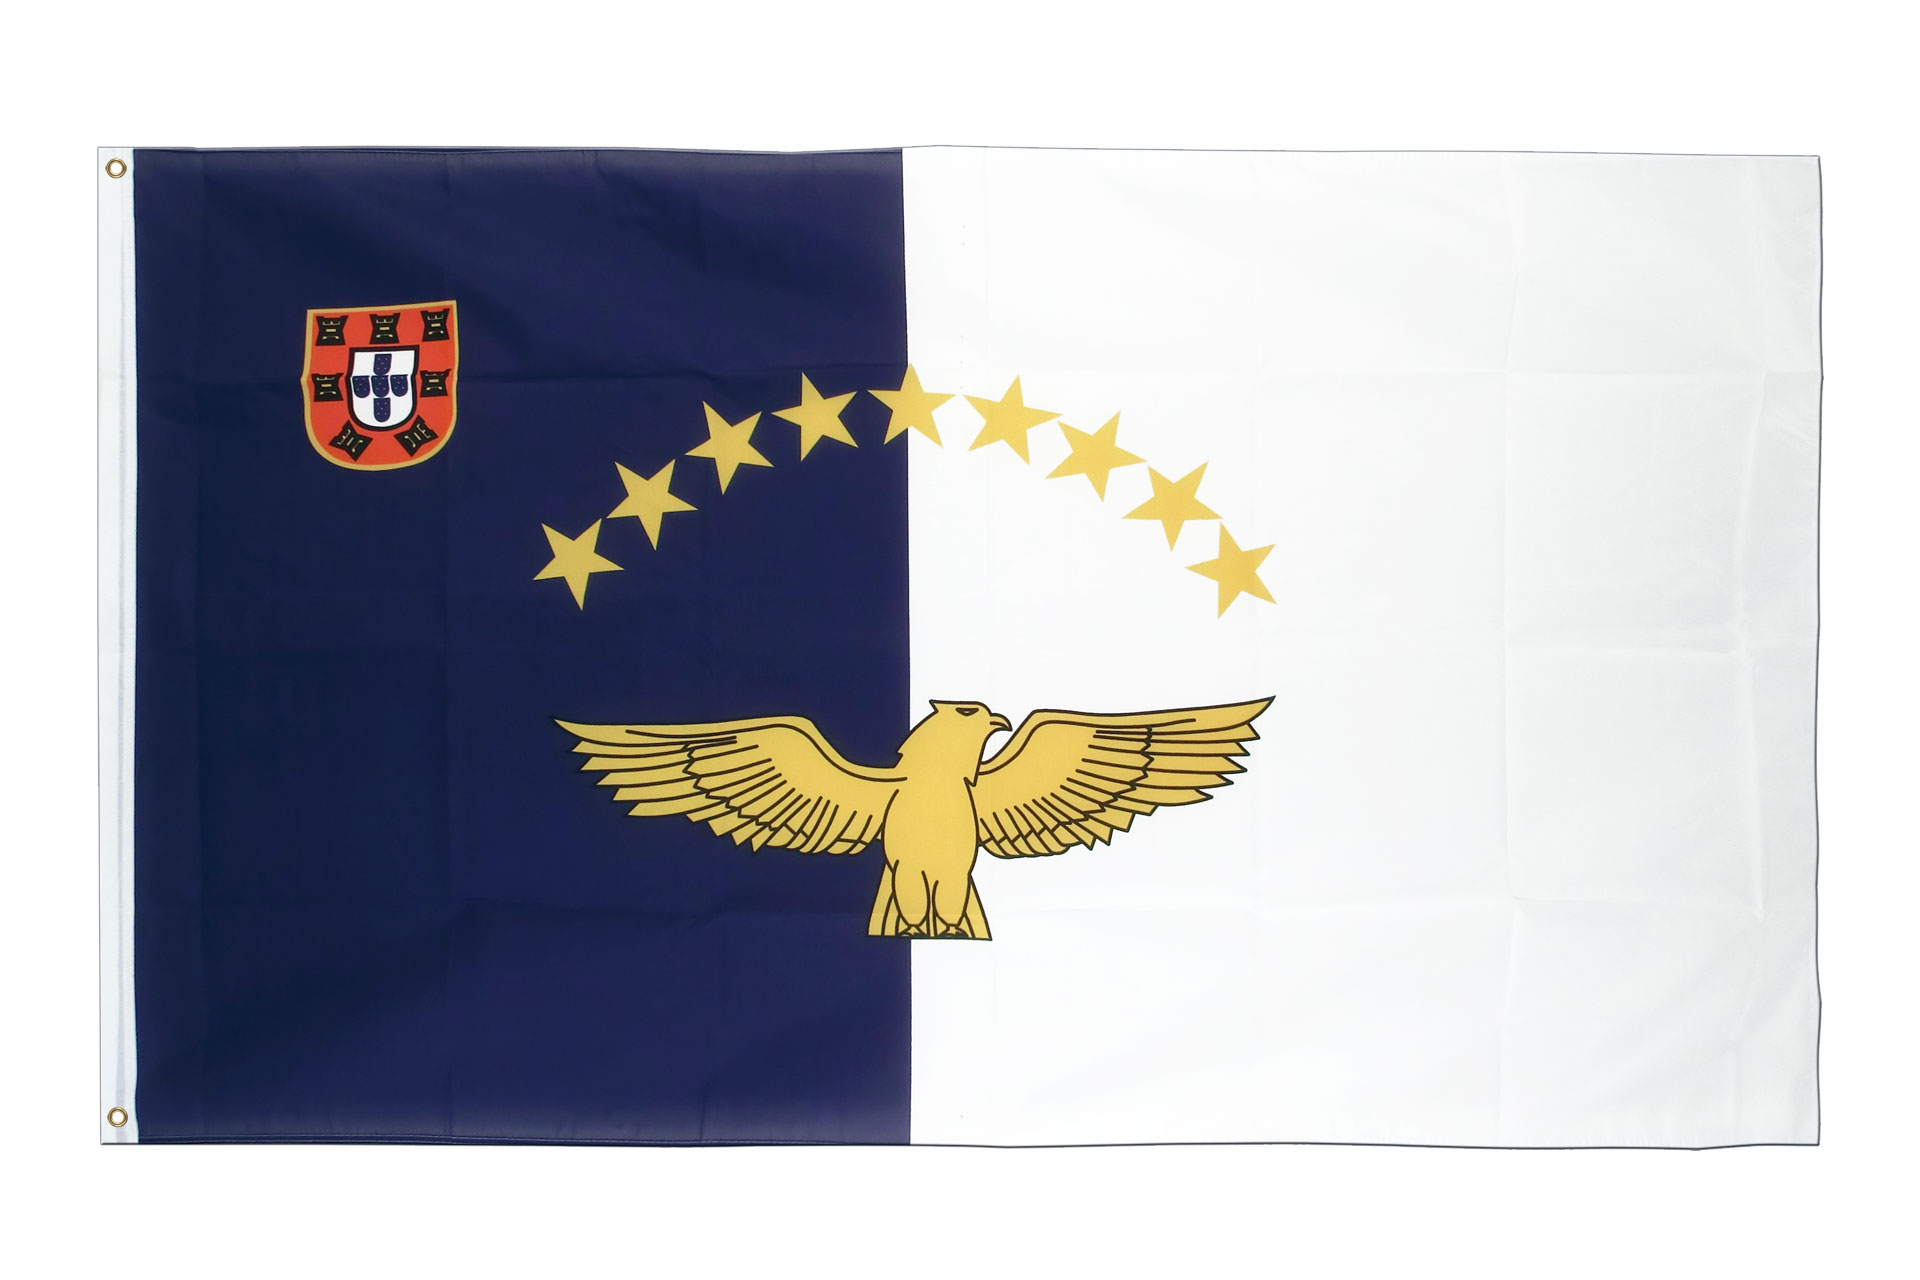 Click here to enlarge the image of the flag: royal-flags.co.uk/azores-flag-1554.html